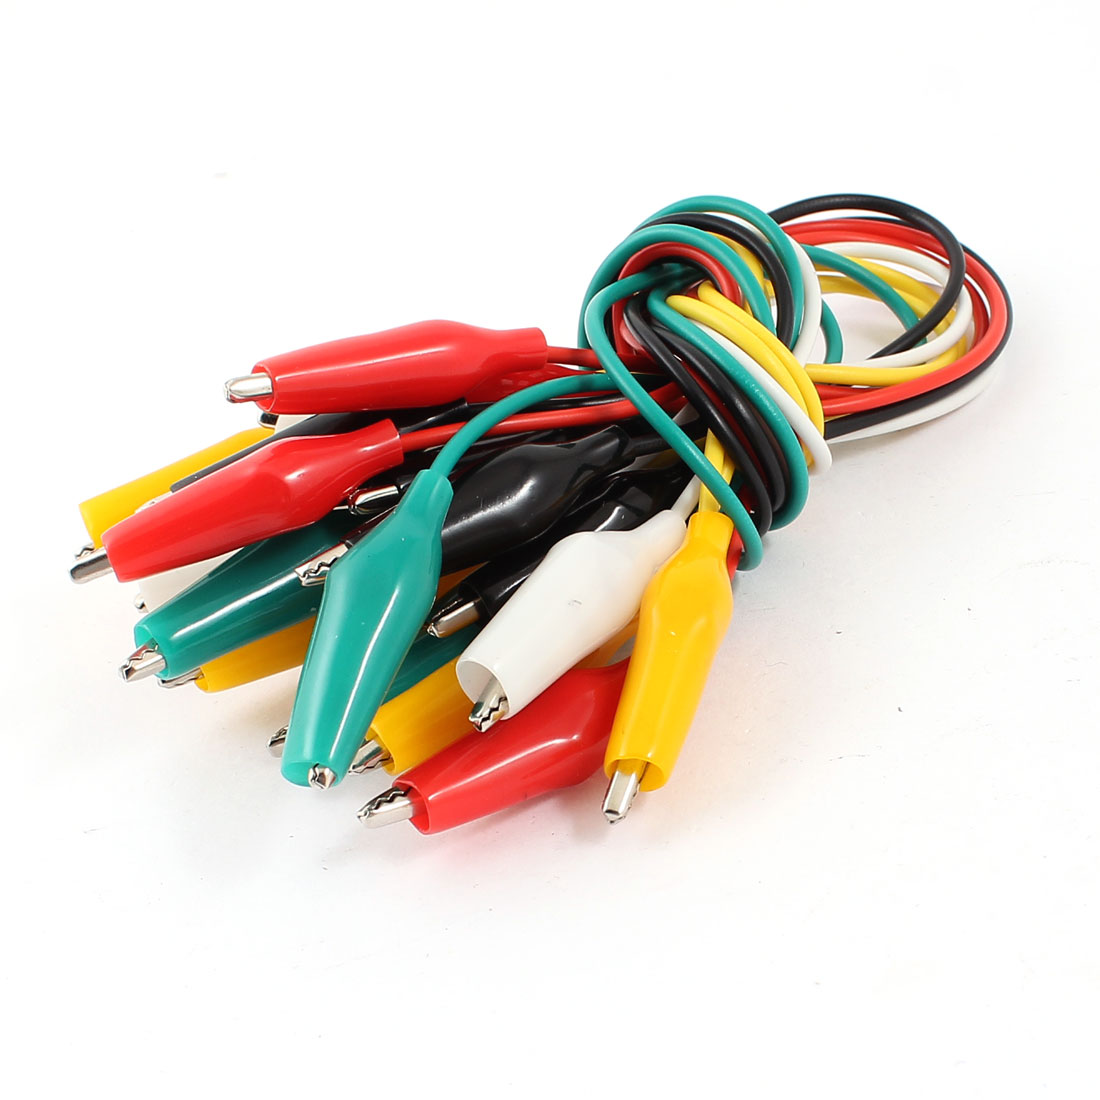 10Pcs Double-ended Test Leads Alligator Crocodile Roach Clip Jumper Wire 30cm